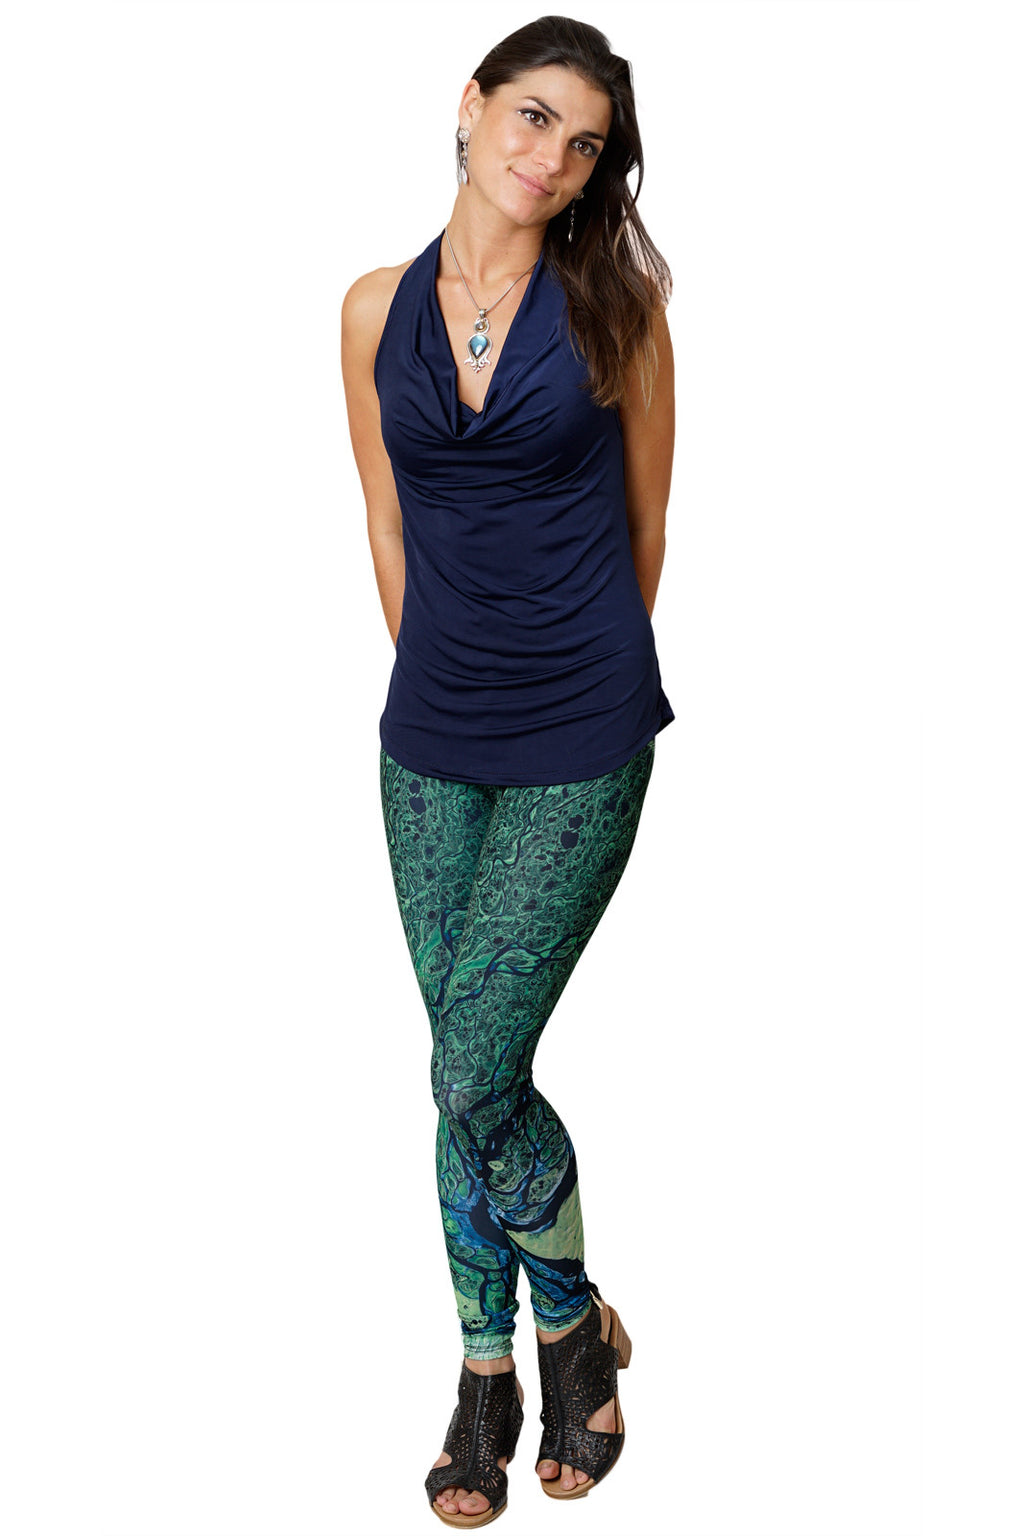 Leggings - Colorful Leggings Hippy Lovers - Lena Delta